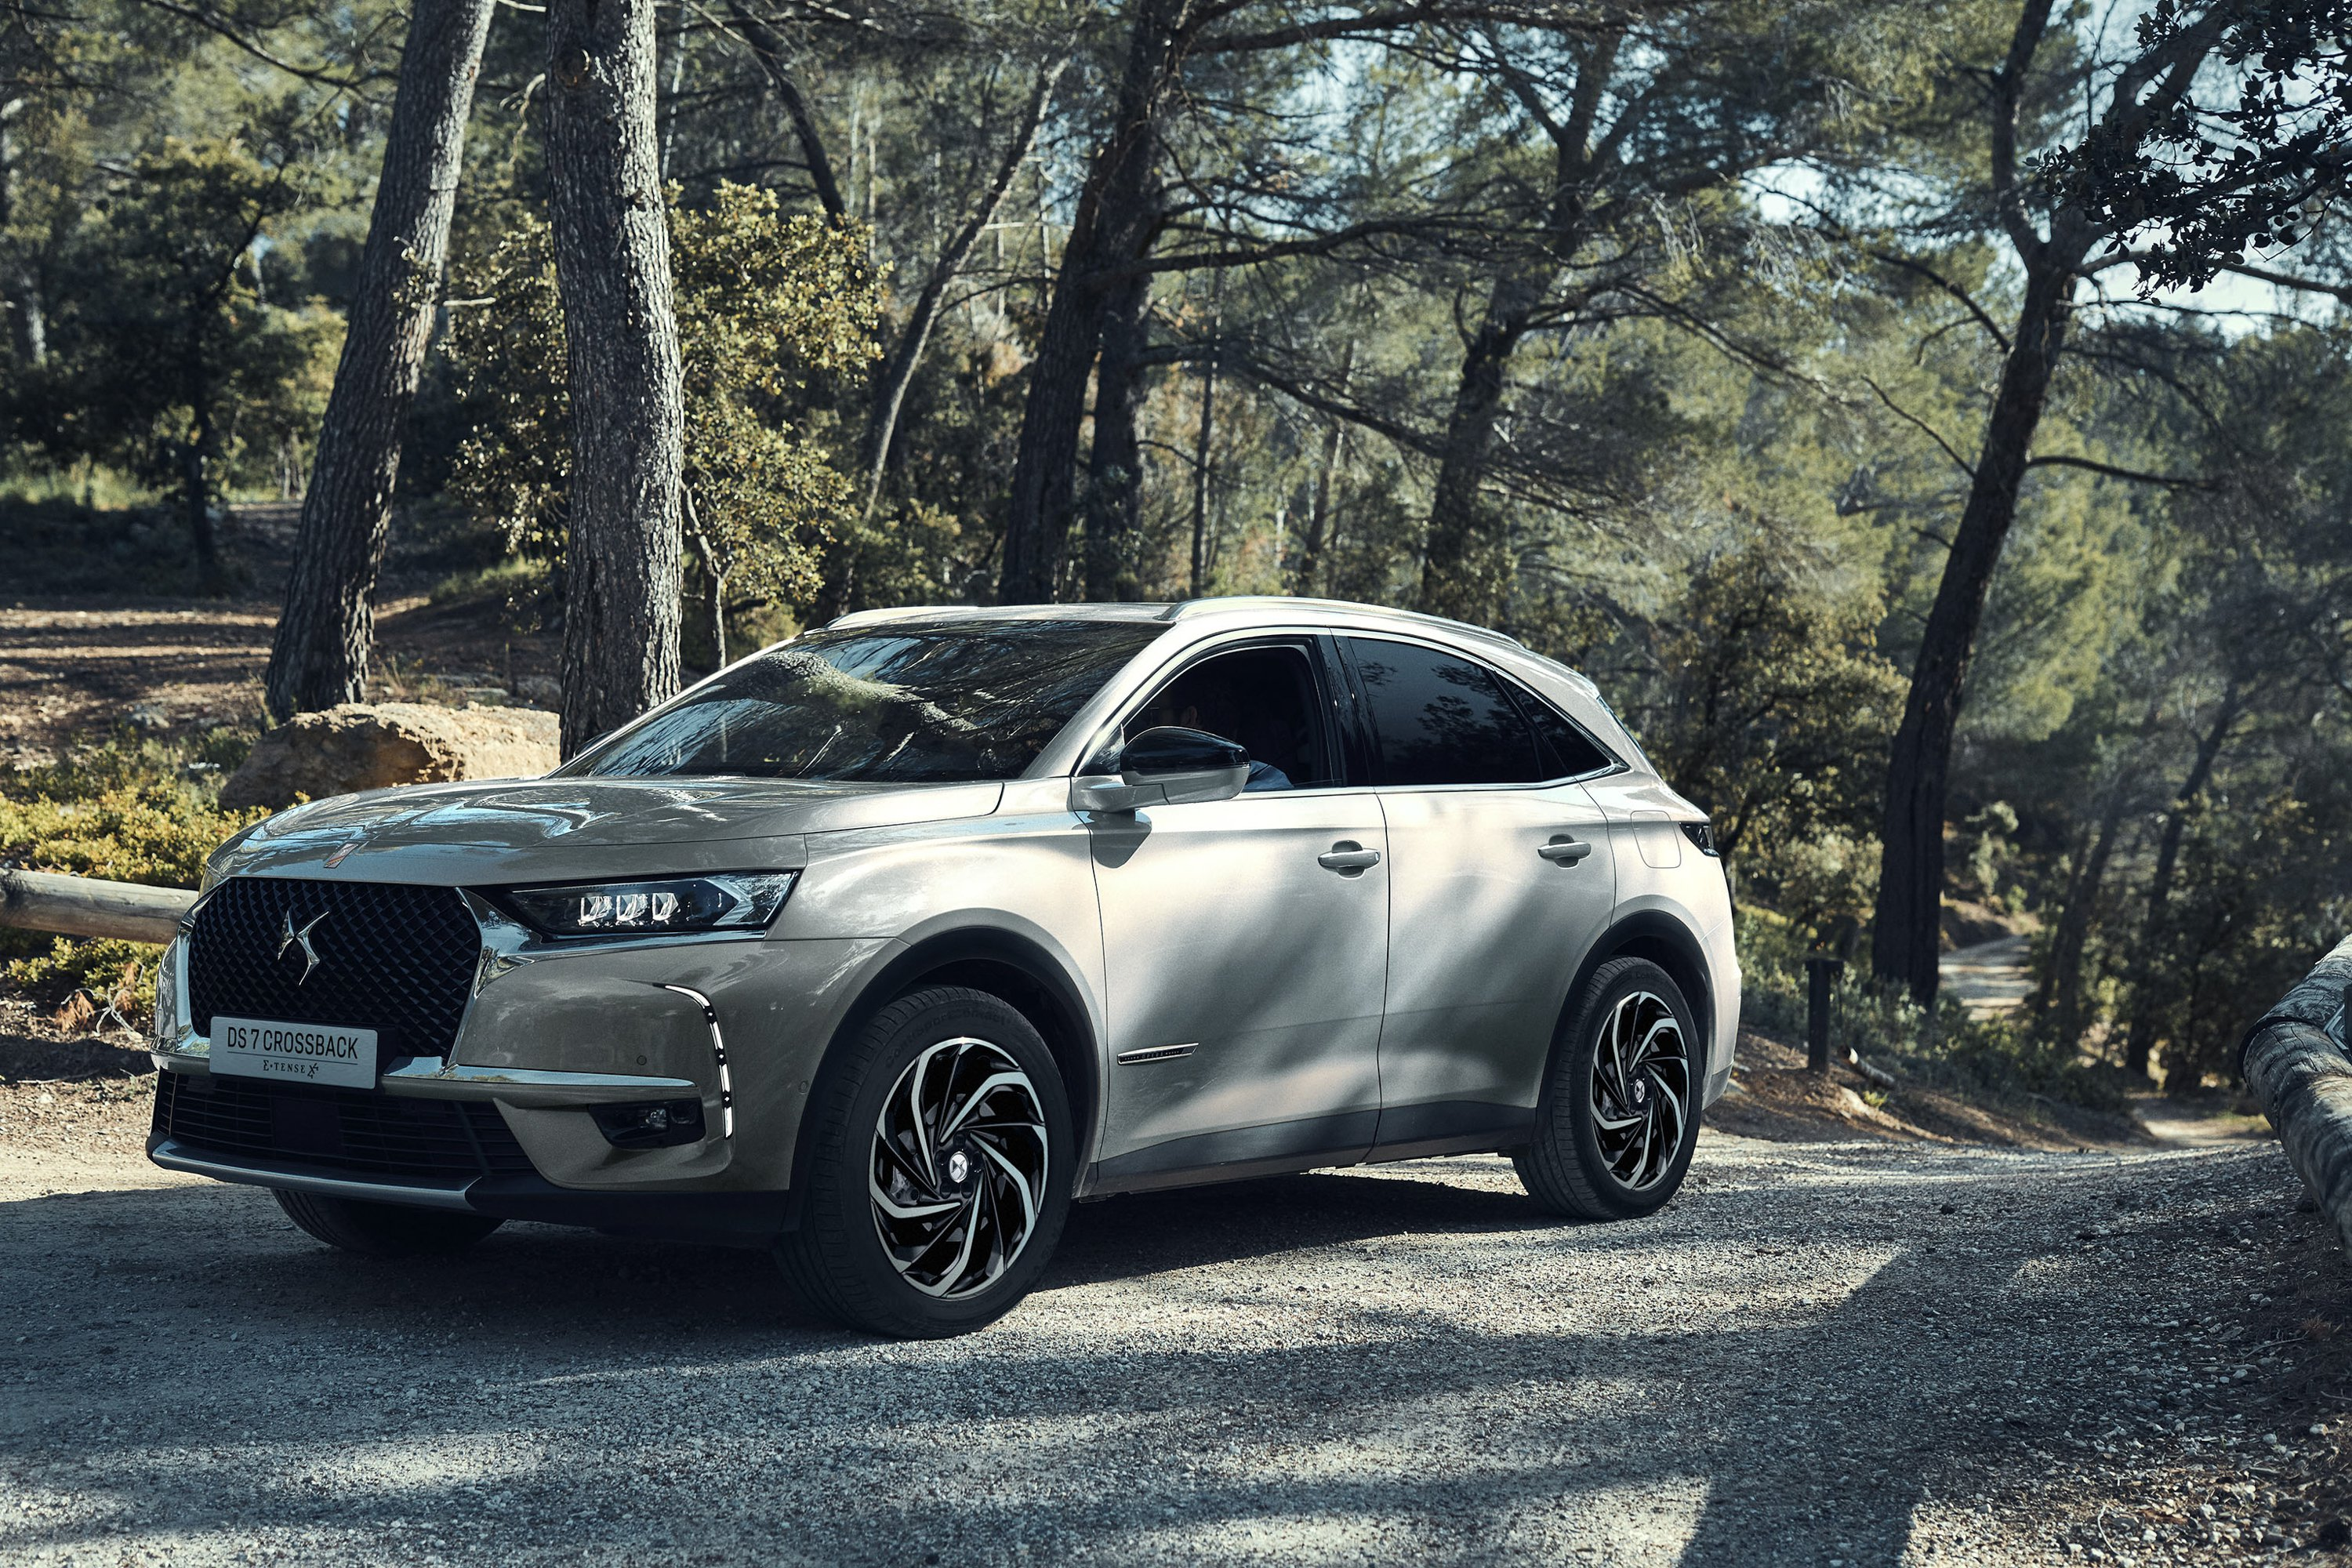 2019 Citroen DS 7 Crossback E-Tense 4x4 Pictures, Photos, Wallpapers ...